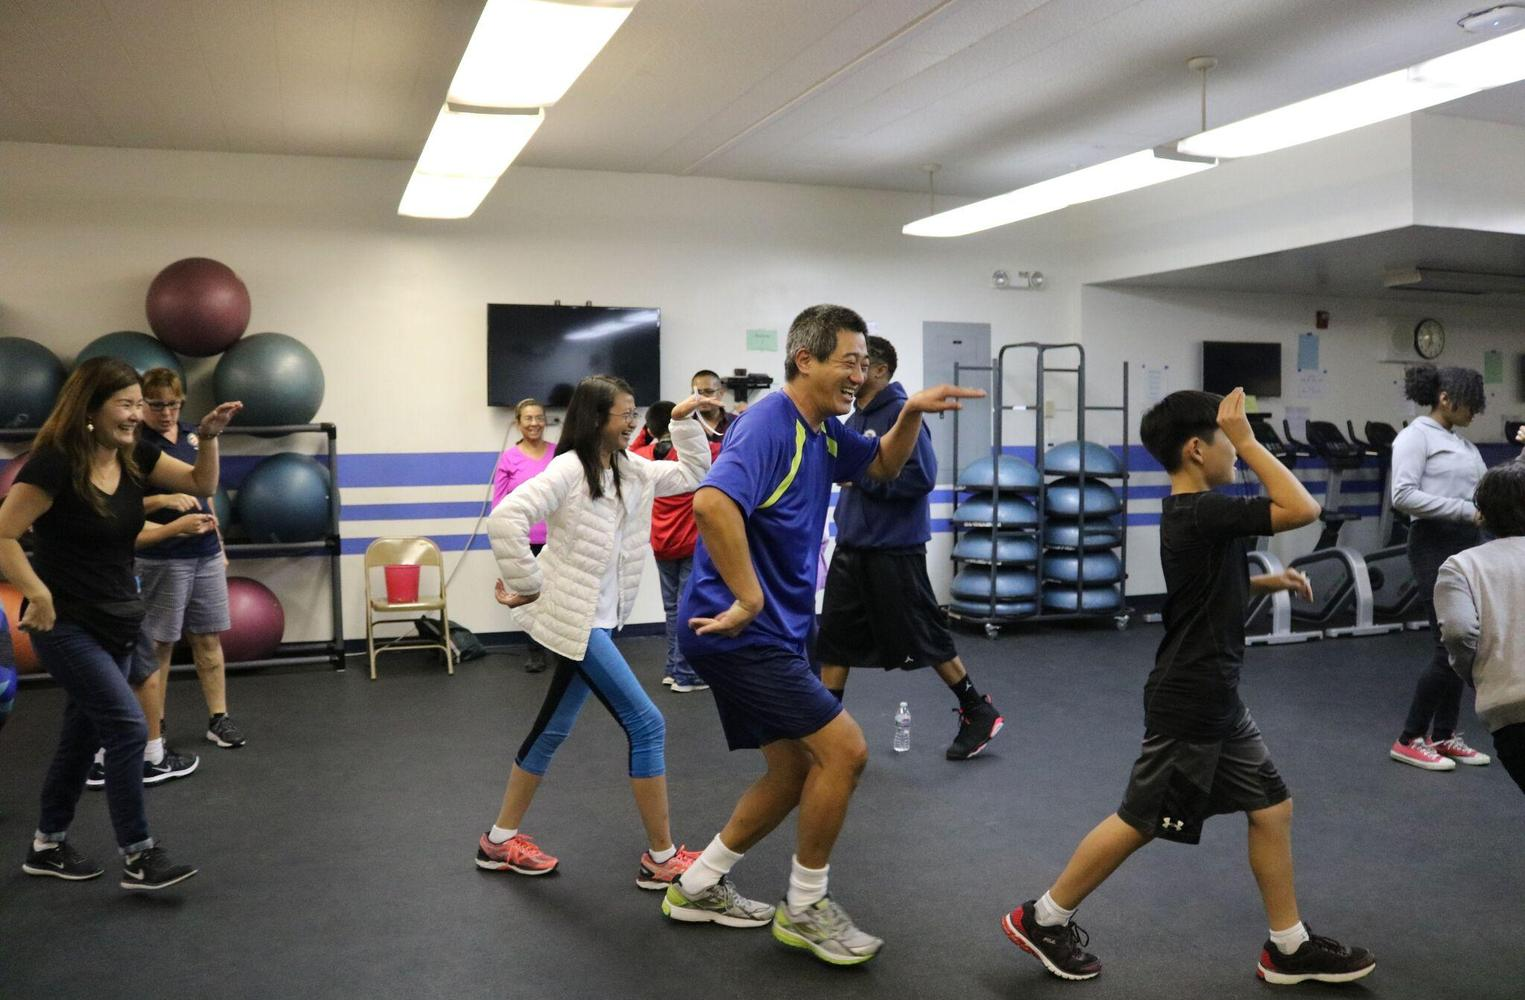 students and parents exercising